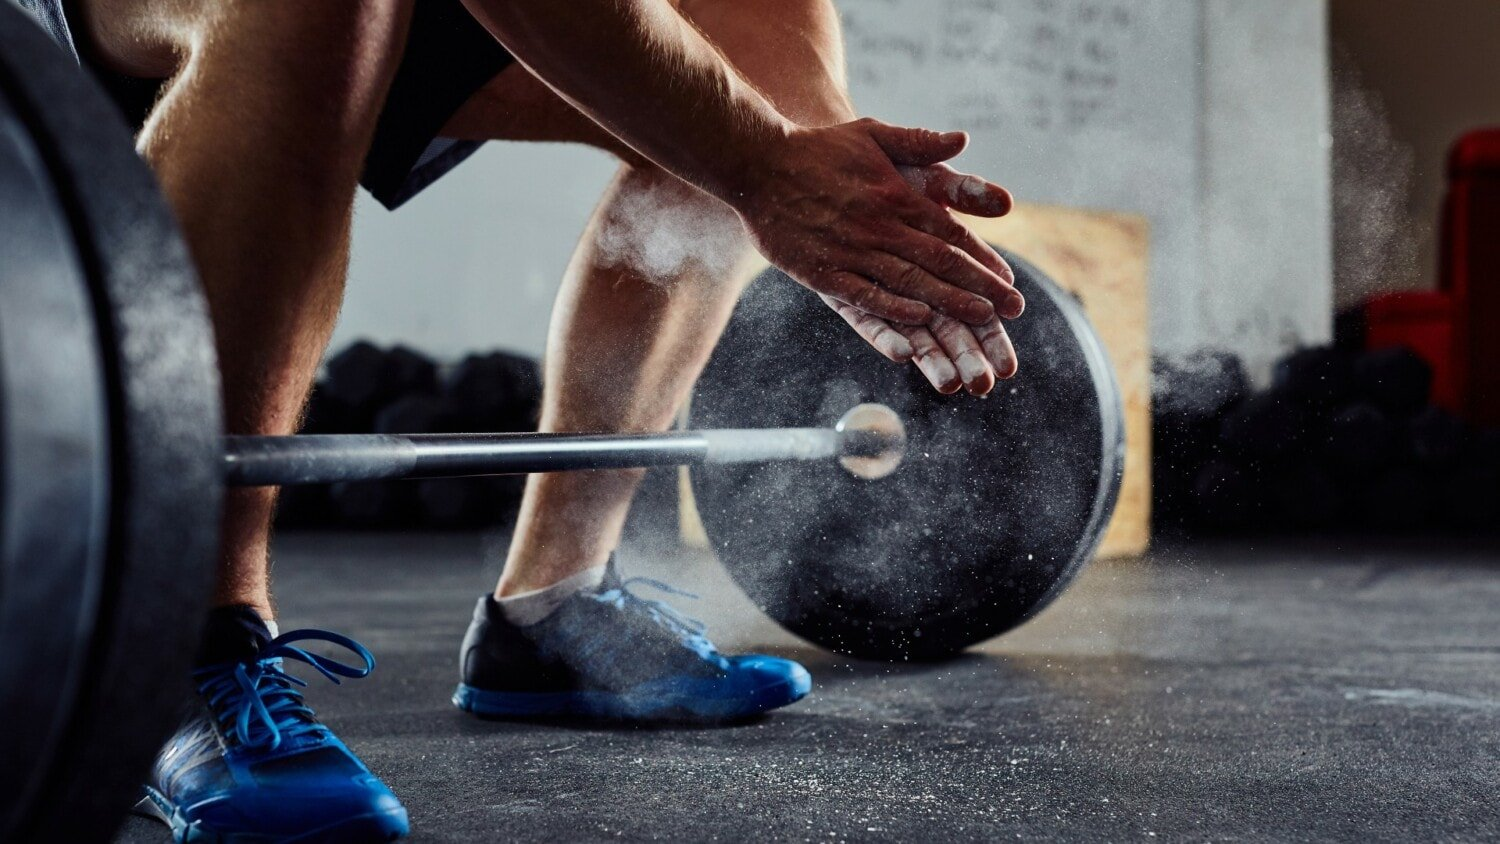 what to eat to gain muscle mass and training